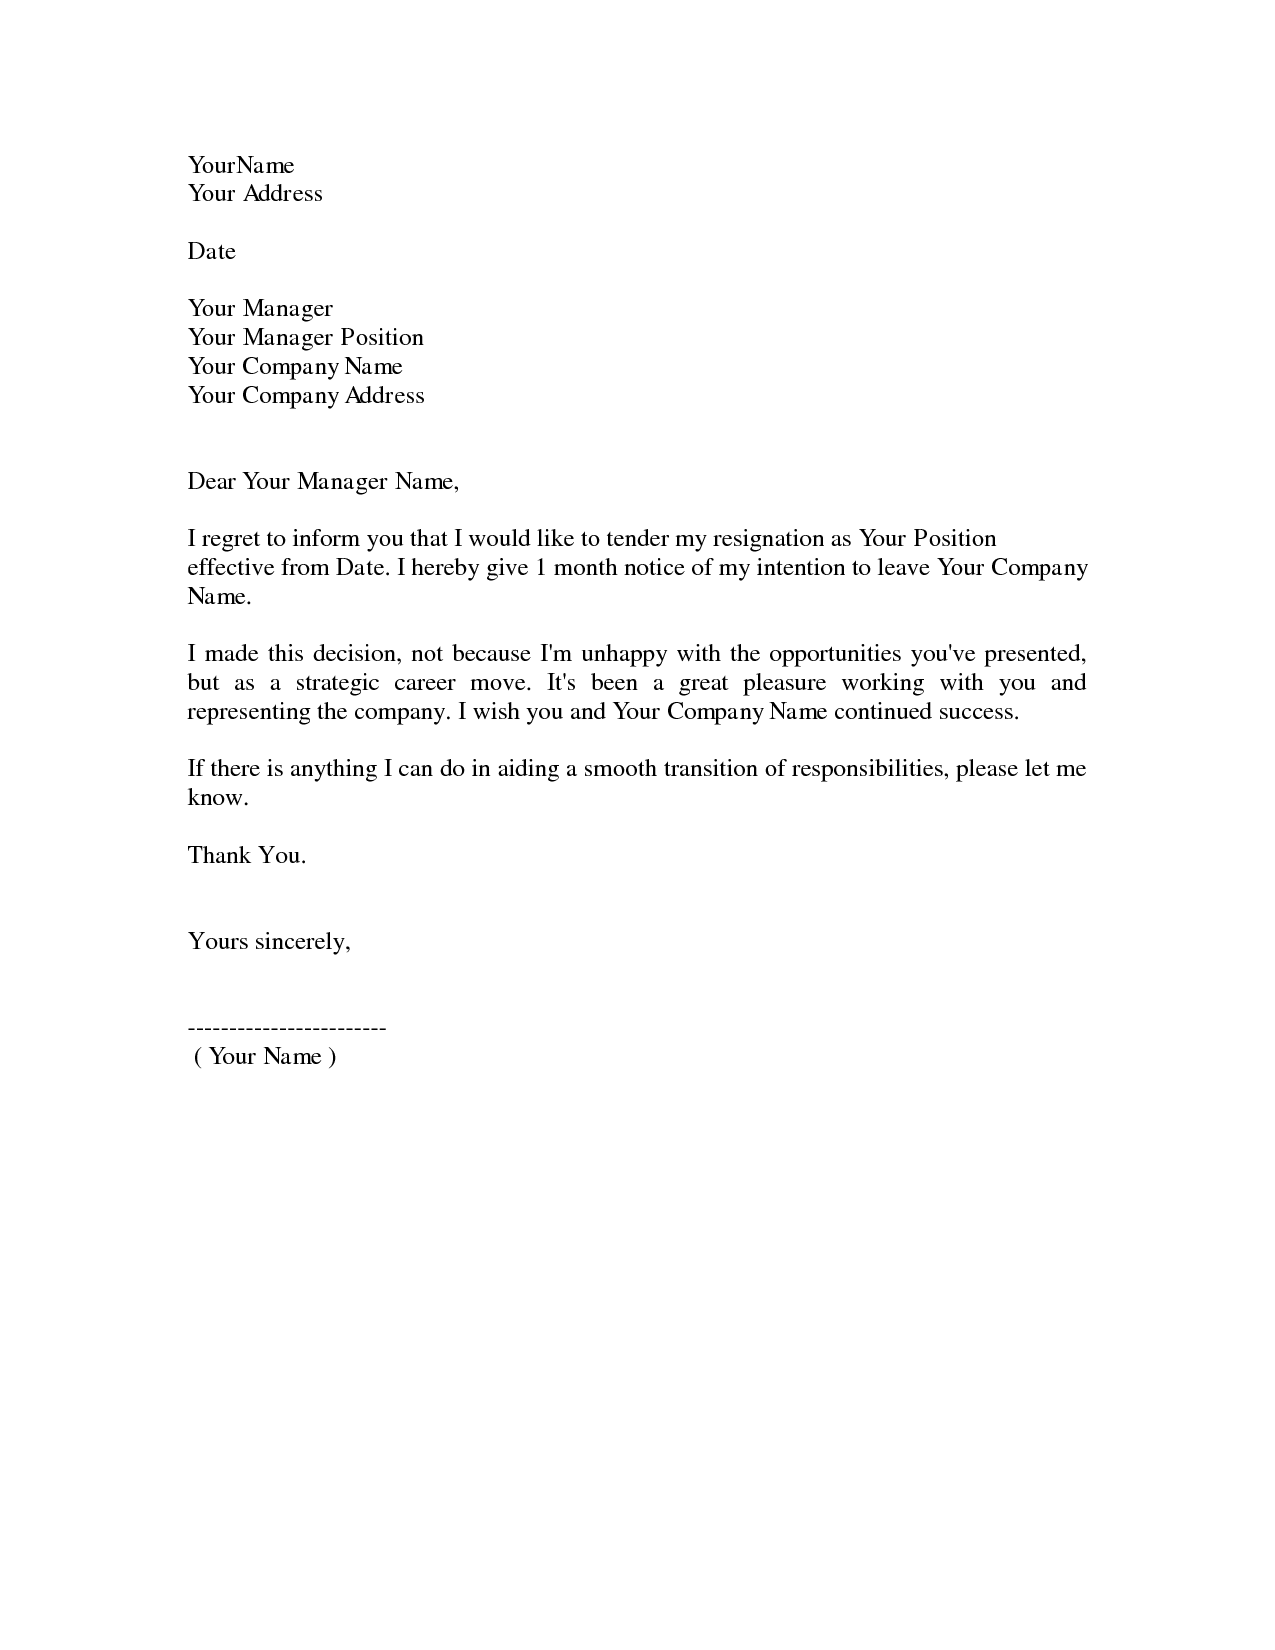 Sample Resignation Letter Template Job Resignation Letter Sample – Sample of Professional Resignation Letter